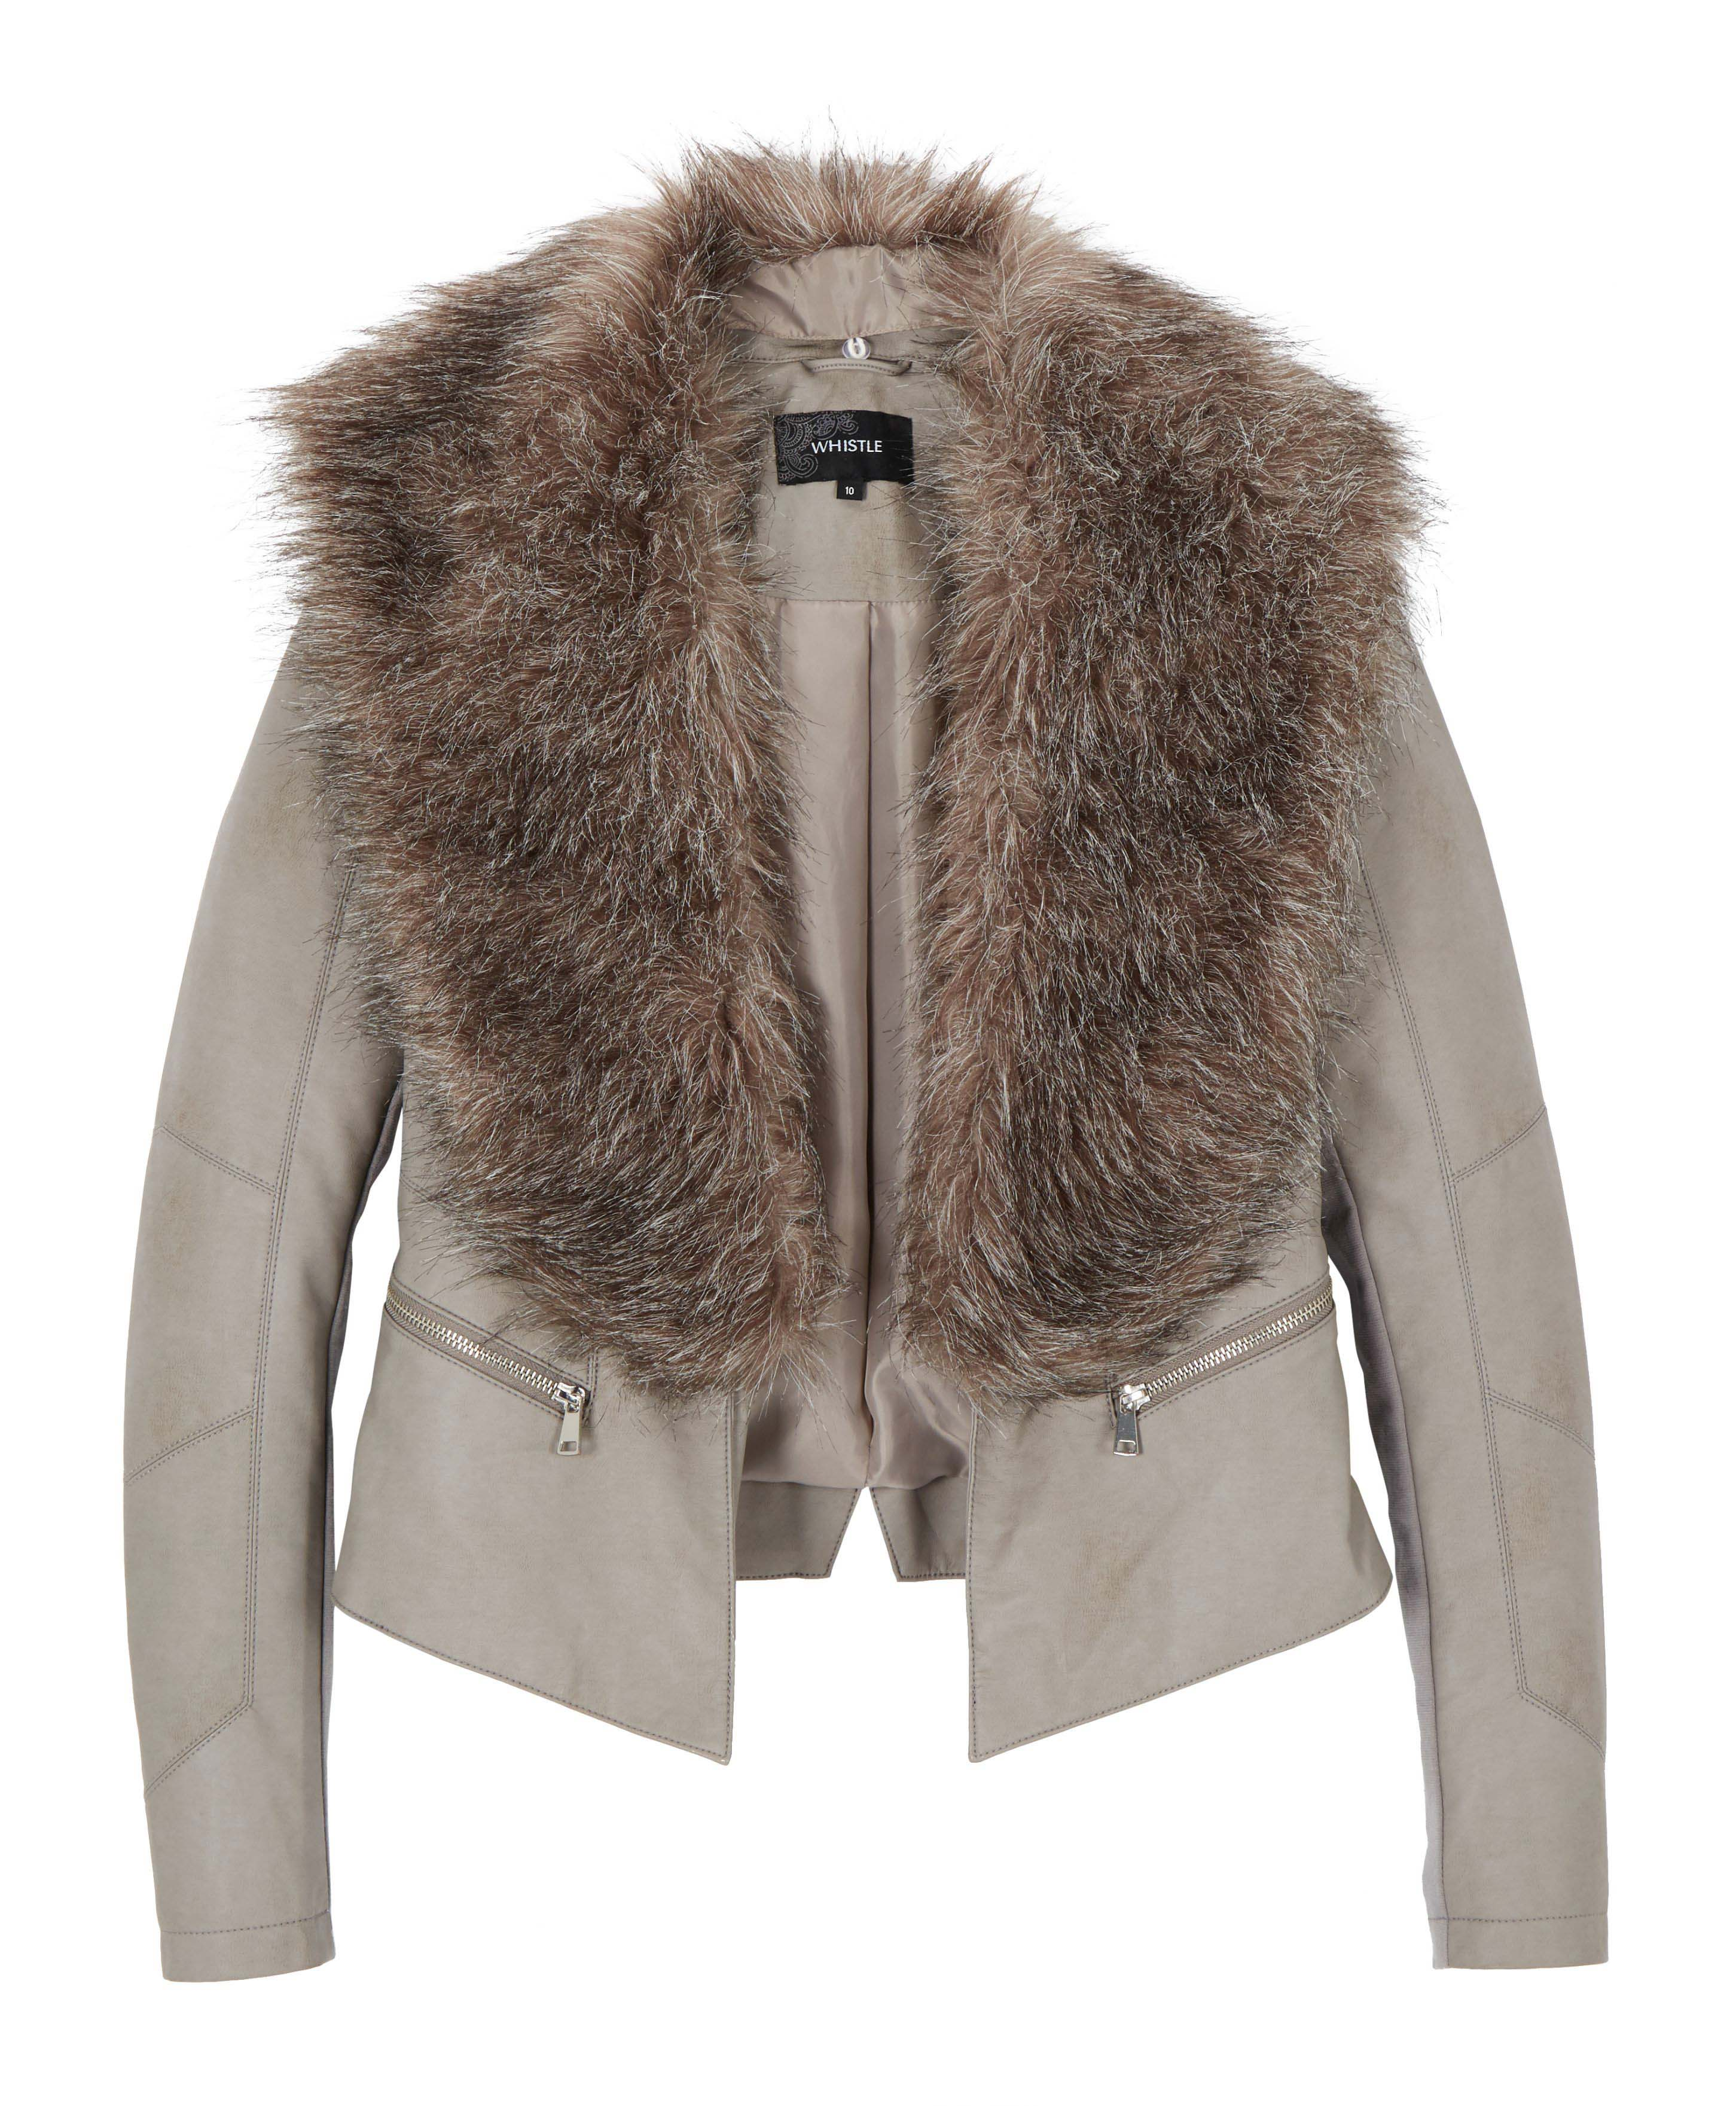 6090187 Whistle Zip Jacket with Faux Fur $149.99 Instore Feb 03 2016